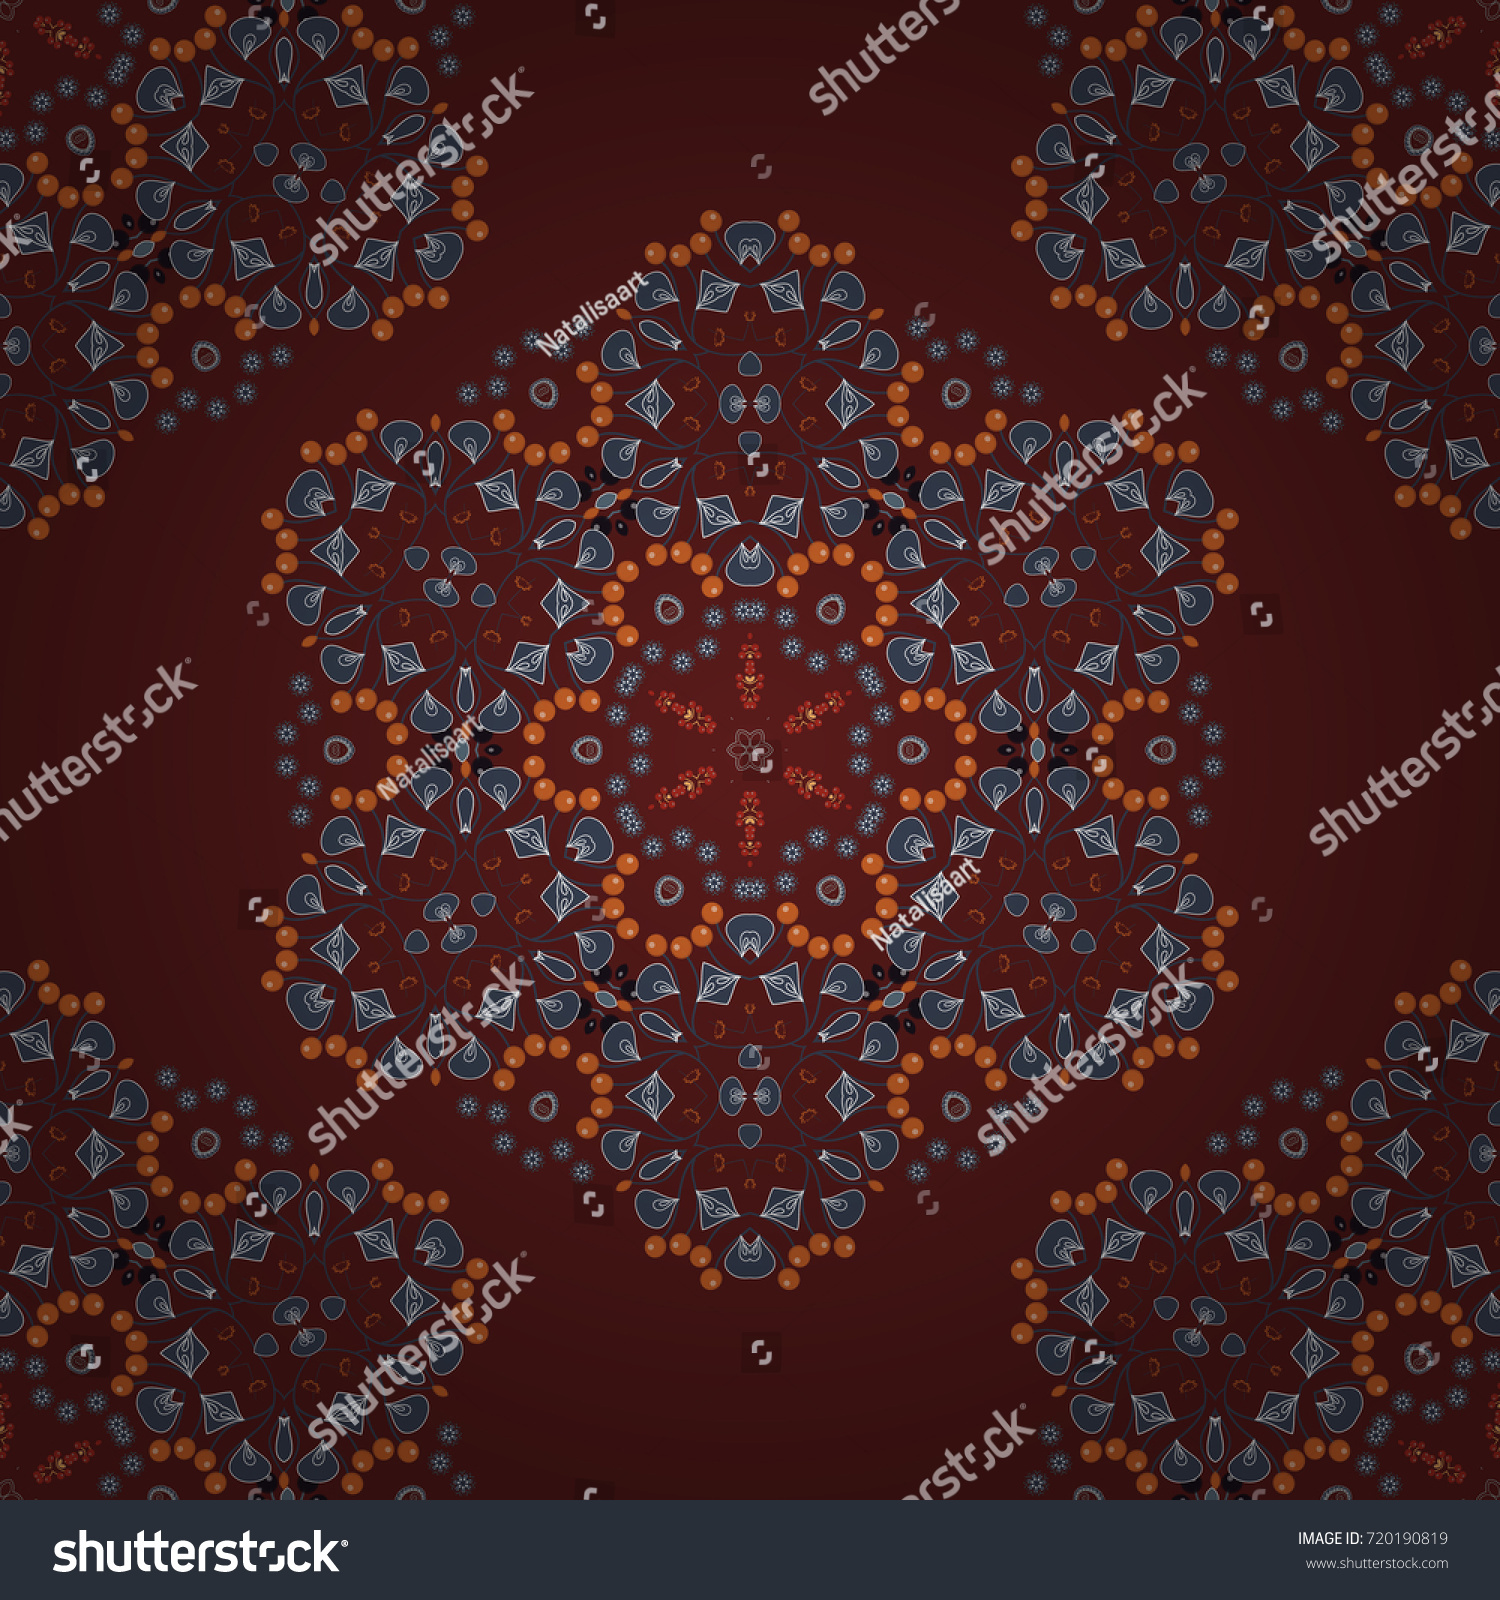 Fabric Wallpaper Or Wrap Print Seamless Motley Pattern With Oriental Mandalas In Blue